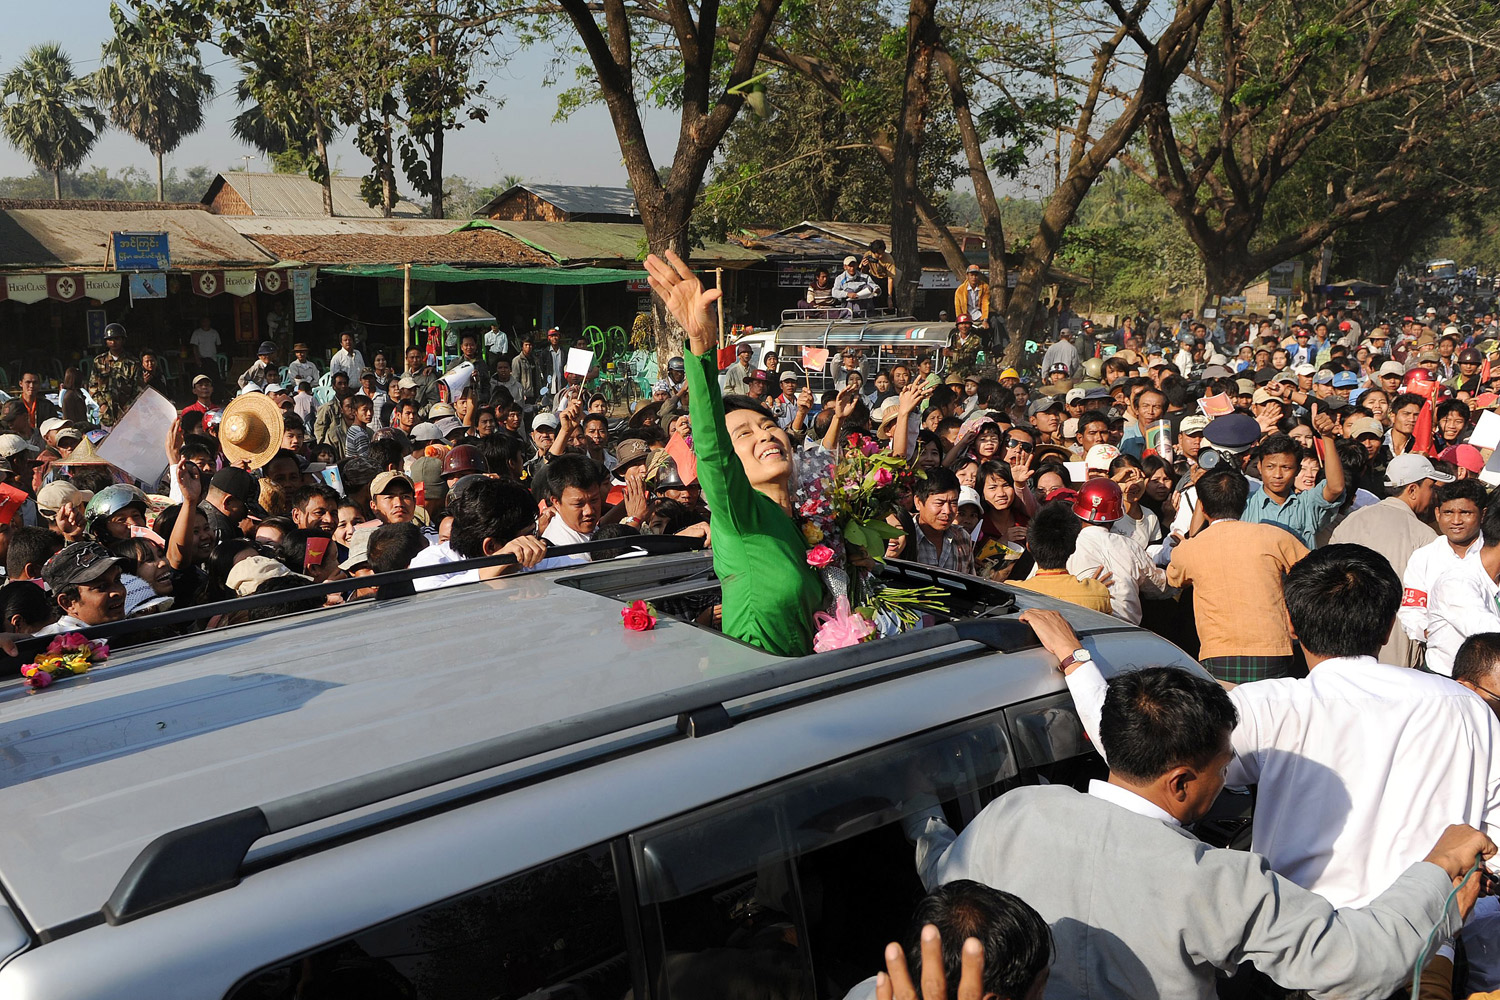 February 7, 2012. Myanmar opposition leader Aung San Suu Kyi (C) waves as she crosses a crowd of supporters while arriving for a political rally as part of her electoral campaign at a stadium in Pathein, Myanmar.